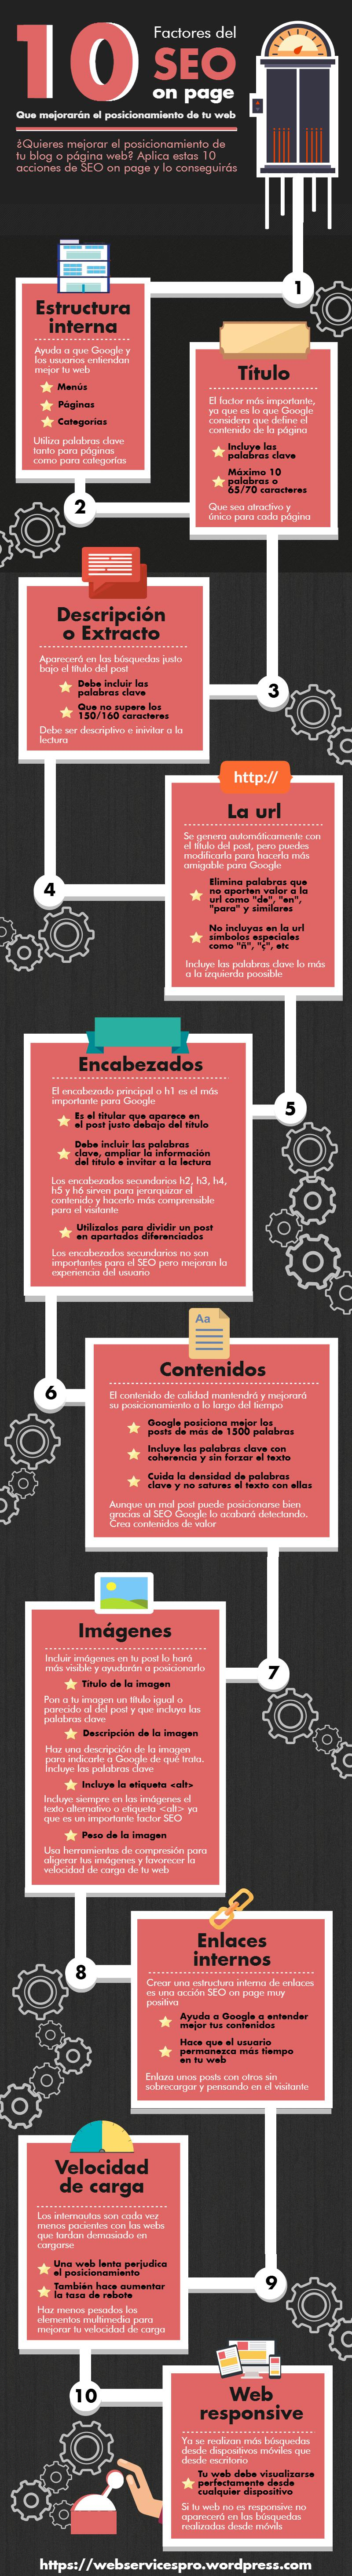 10 factores del SEO on page